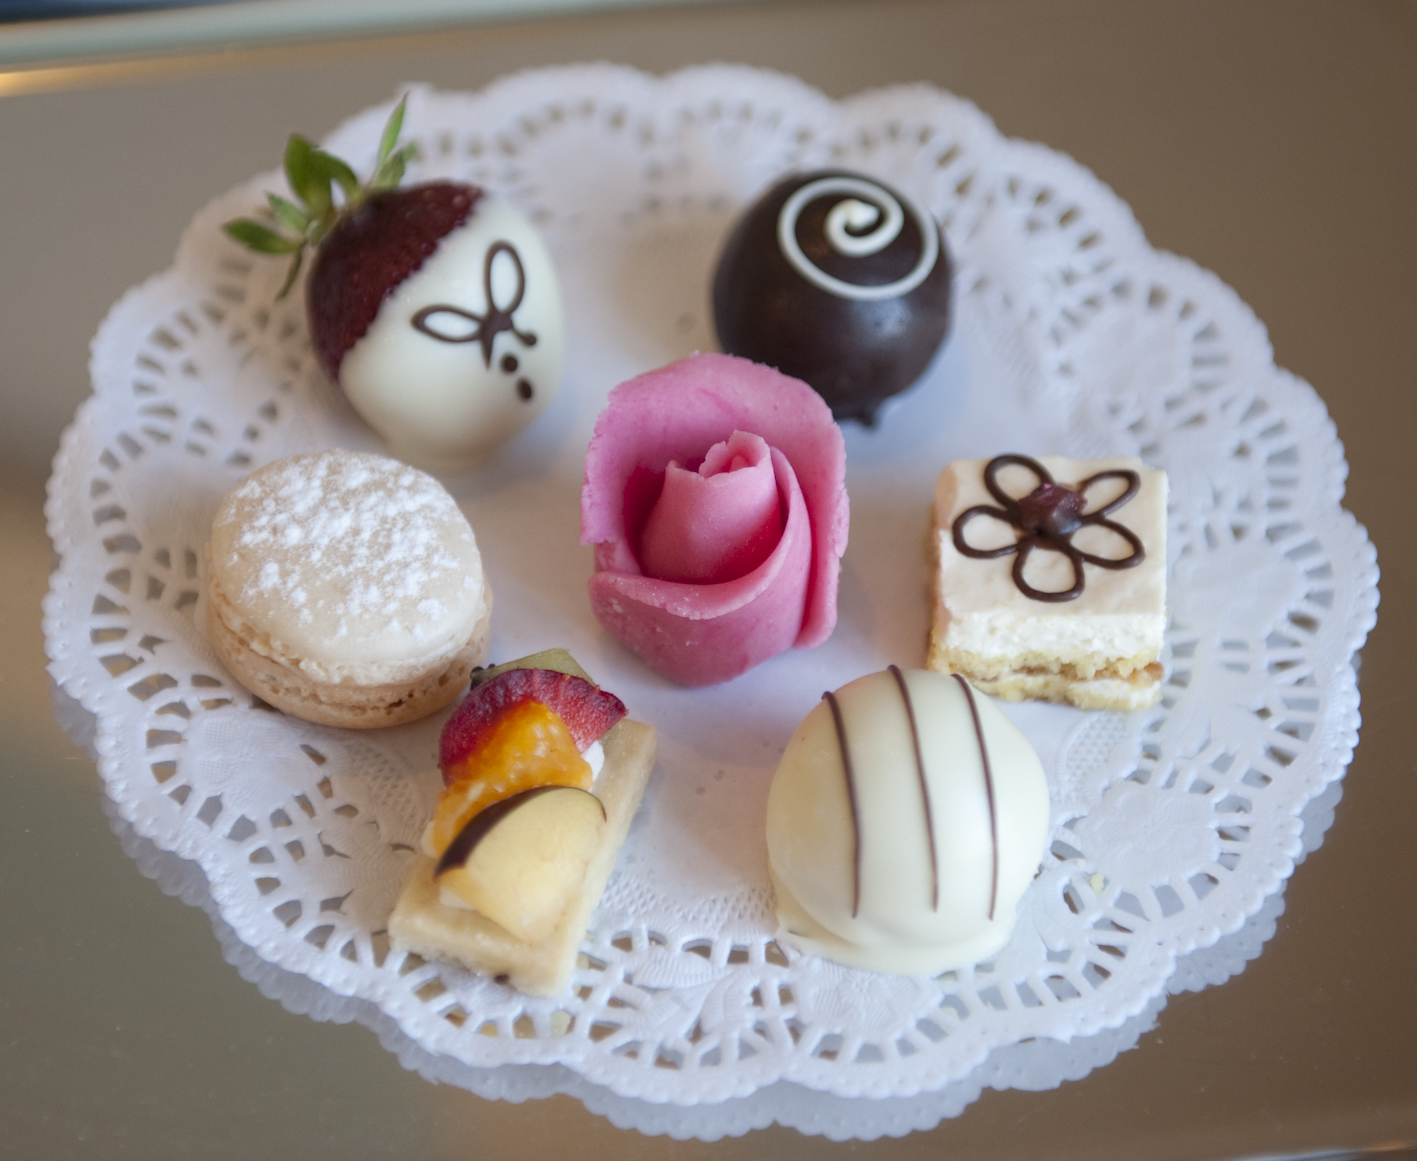 Voyages to Antiquity Aegean Odyssey Cakes.jpg